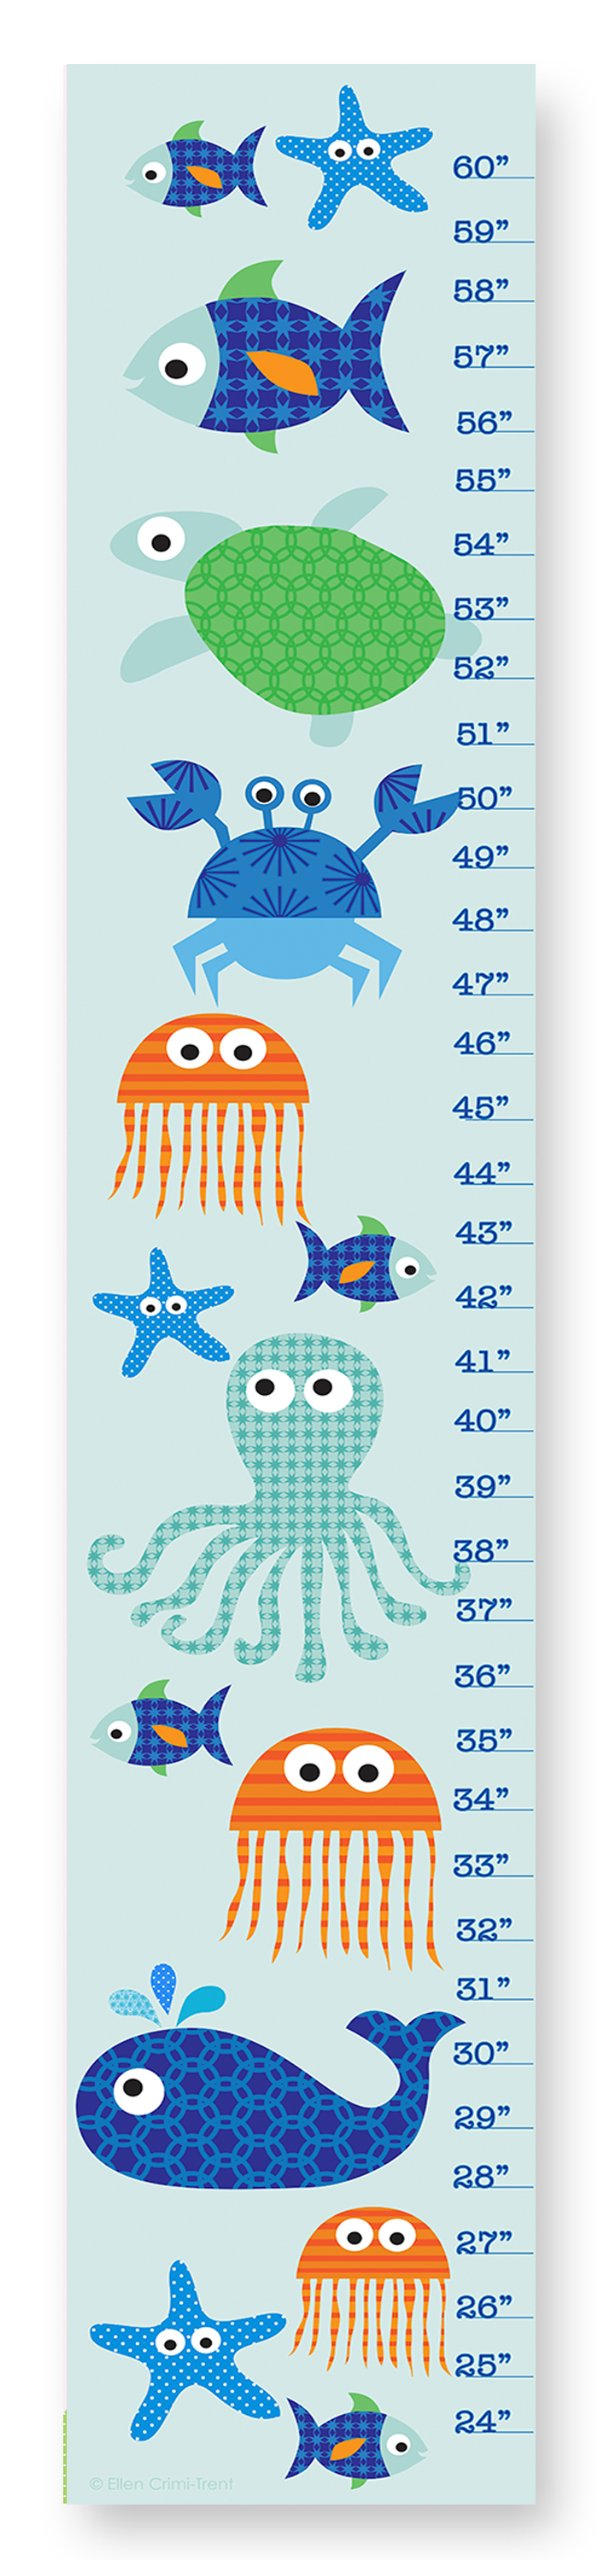 The Kids Room by Stupell Sea Life Blue Growth Chart, 7 x 0.5 x 39, Proudly Made in USA